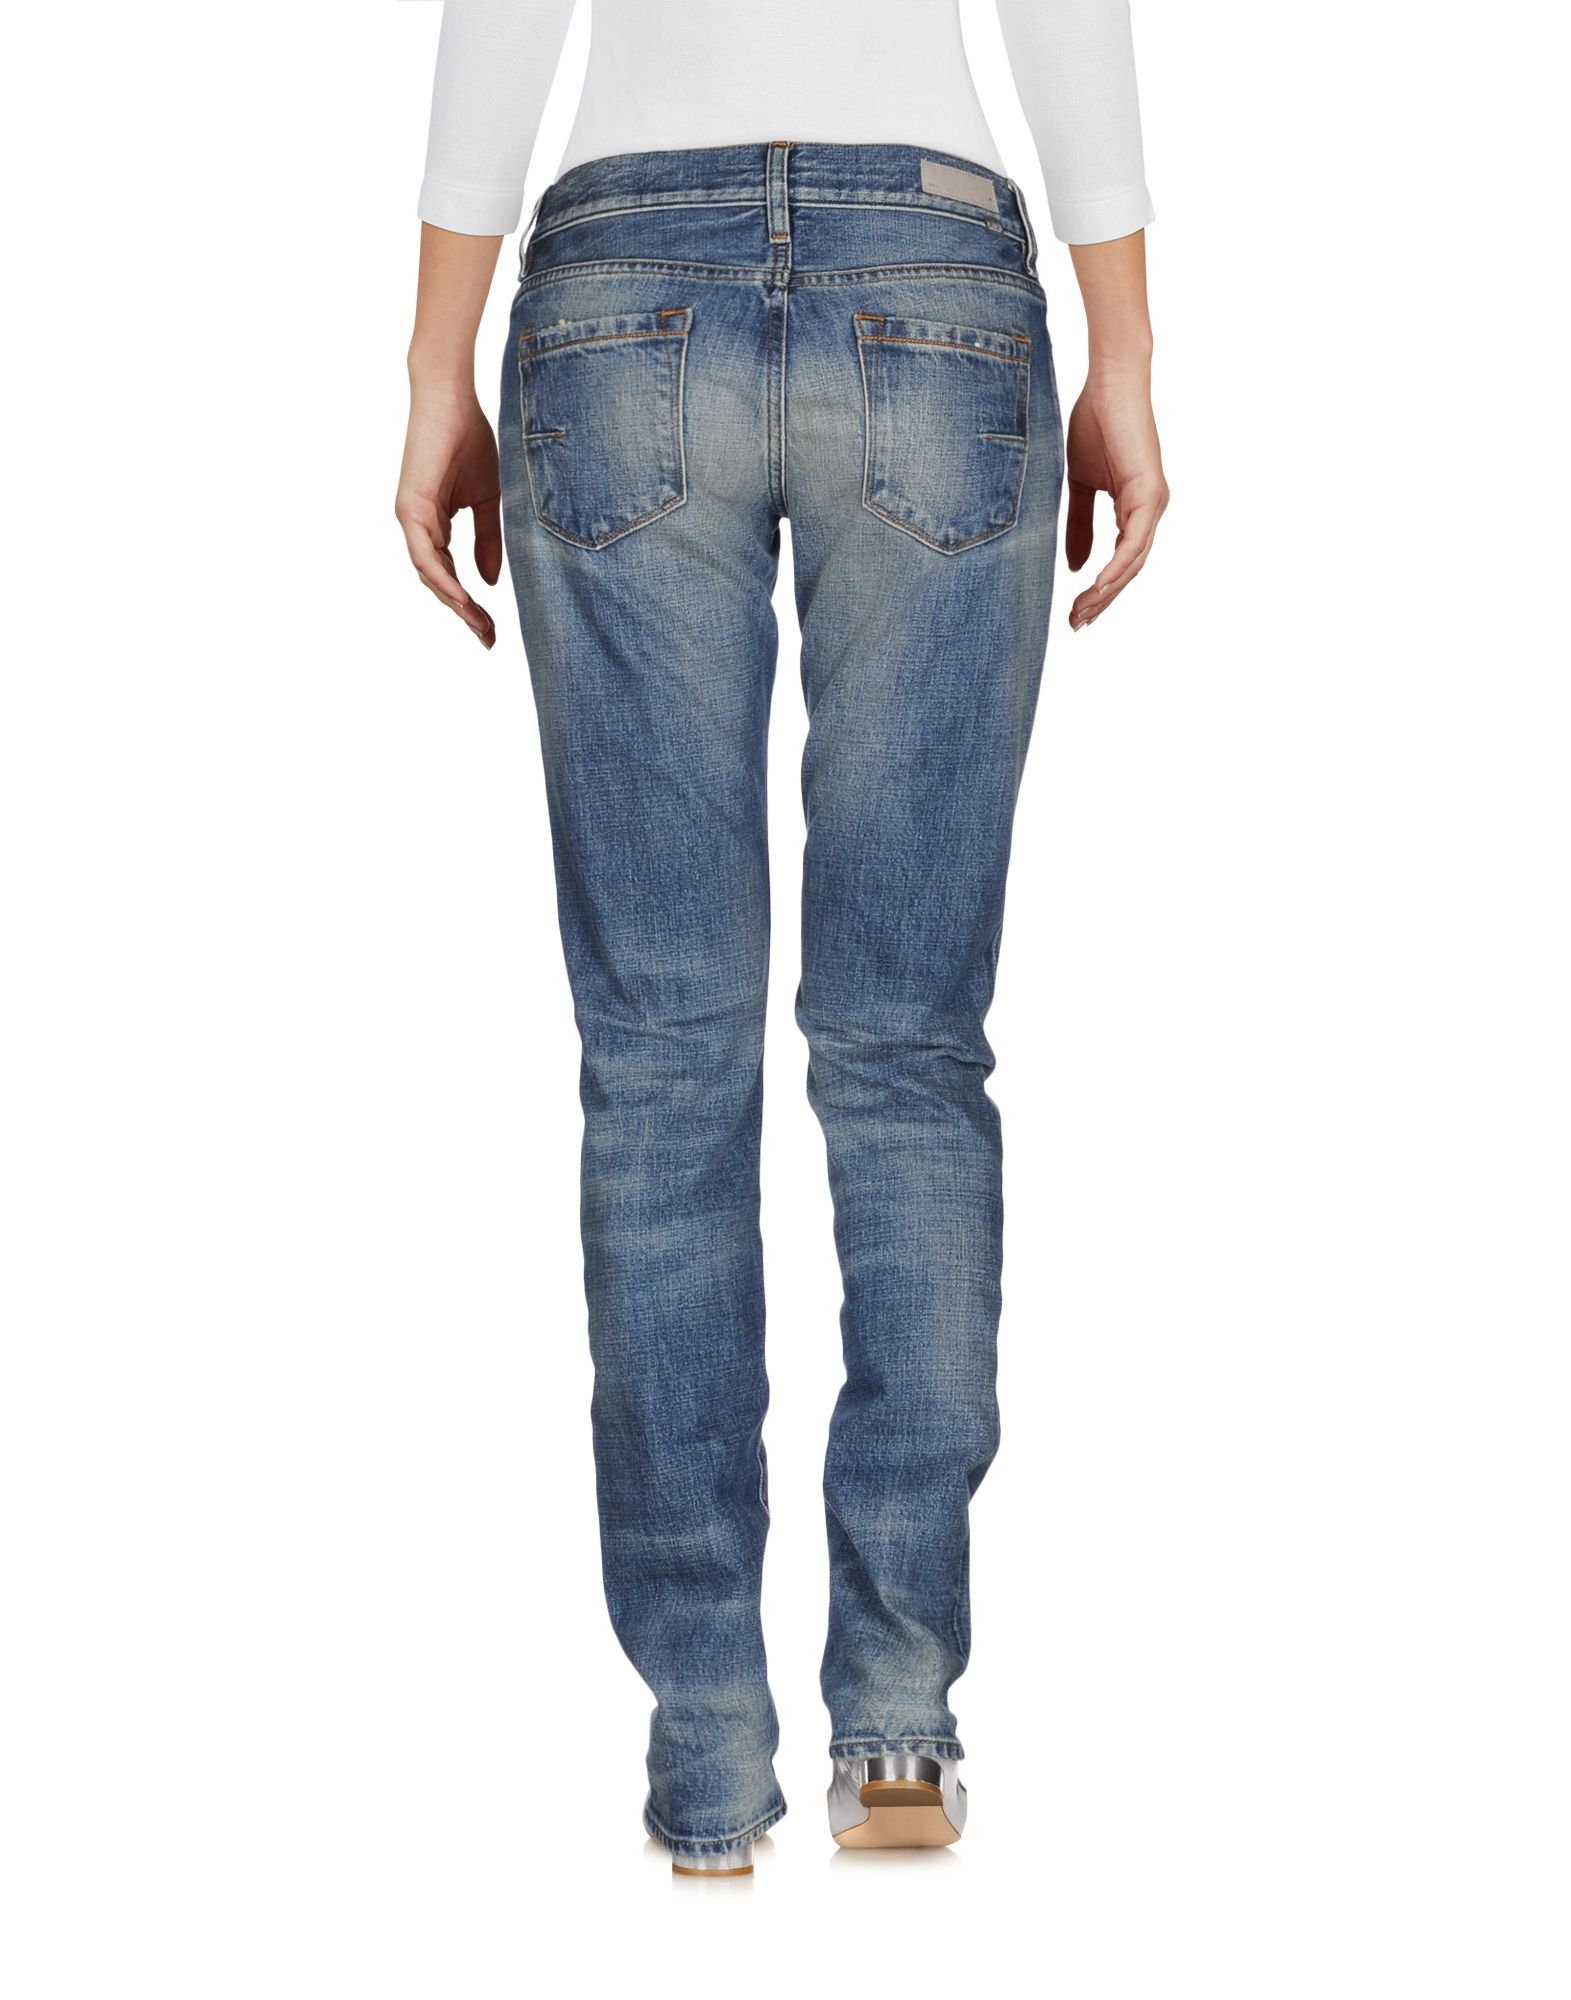 Mauro Grifoni Blue Cotton Low Waisted Jeans